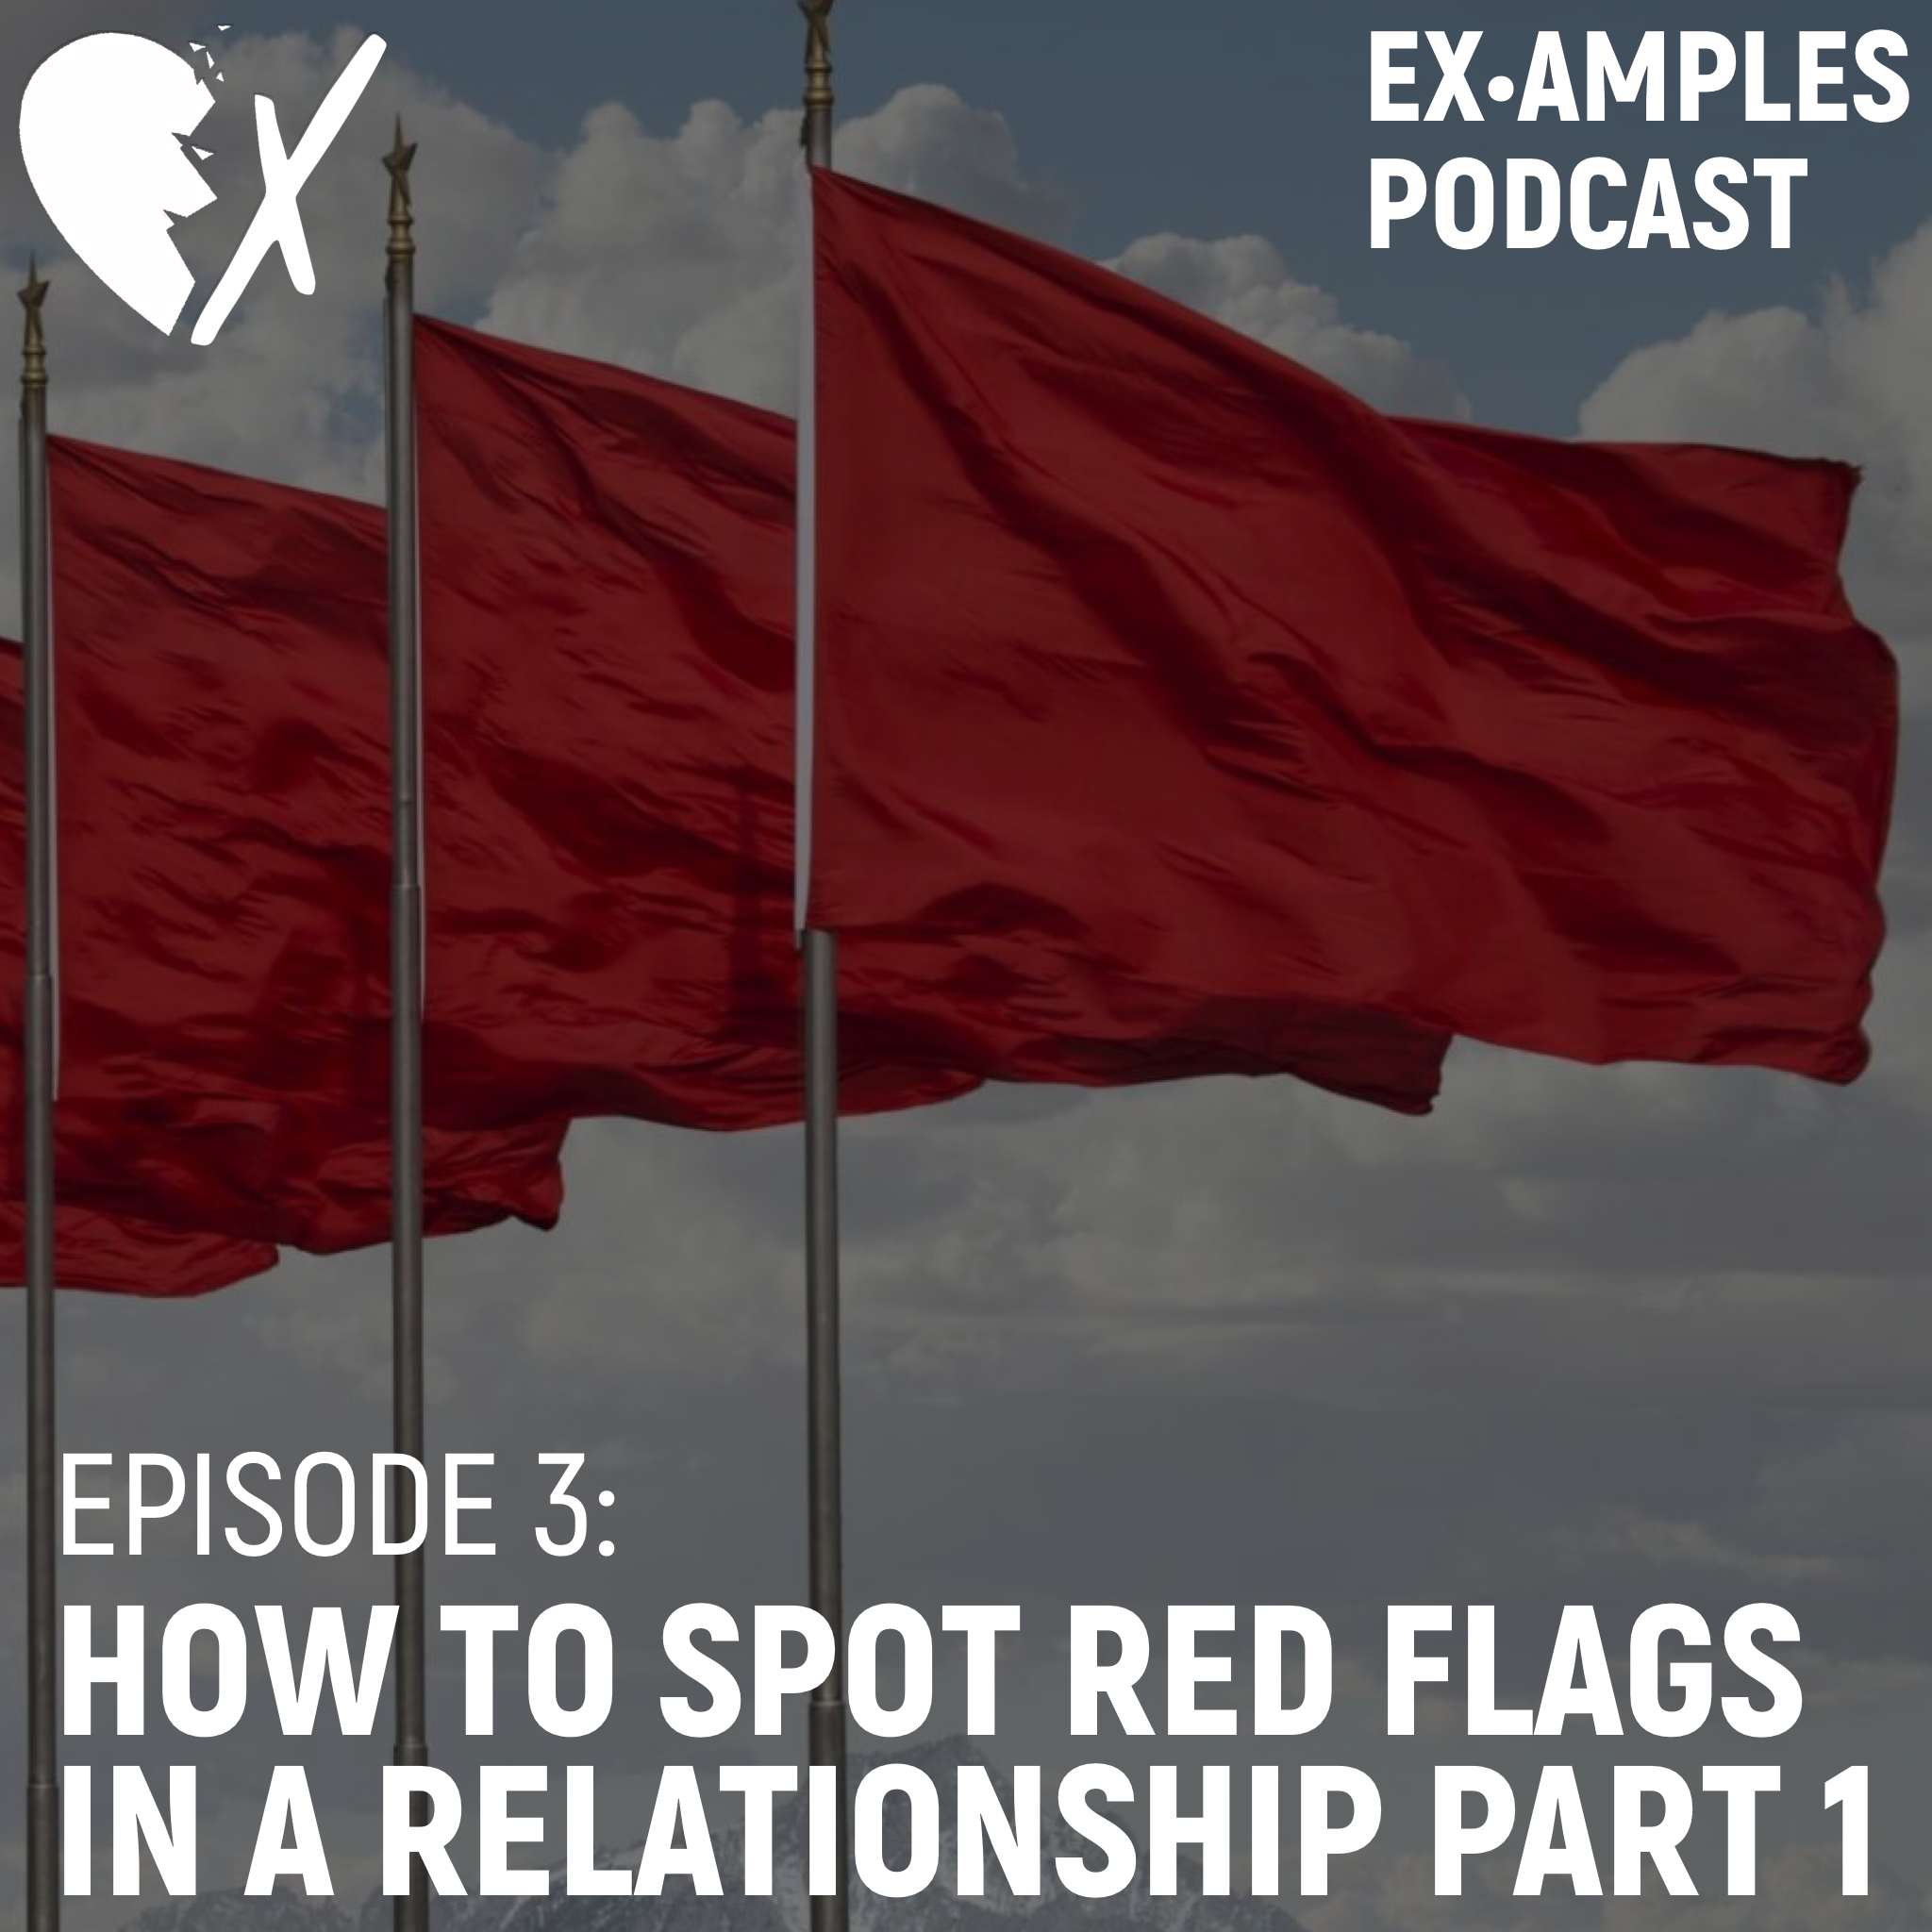 Episode 3: How to spot red flags in a relationship part 1